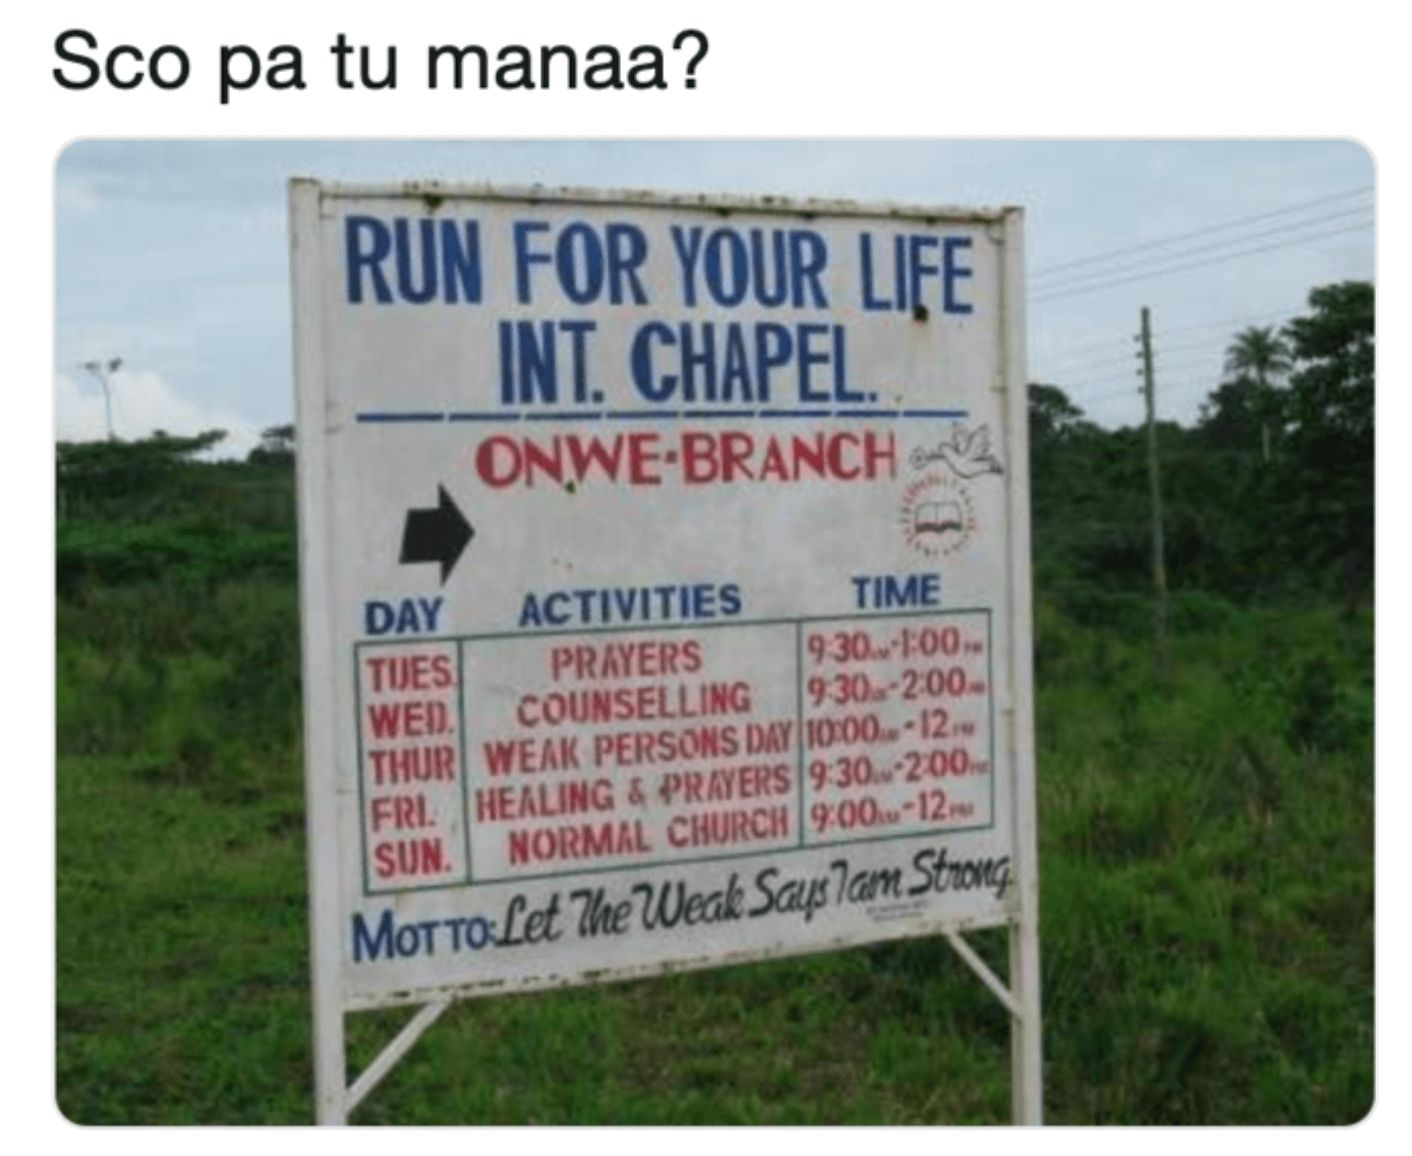 Image may contain: Sco Pa Tu manaa meaning, Sco Pa Tu manaa, what does Sco Pa Tu manaa mean, Twitter, viral, meme, examples, meme, define, origin, first, tweet, funny, Road Sign, Sign, Symbol, Advertisement, Poster